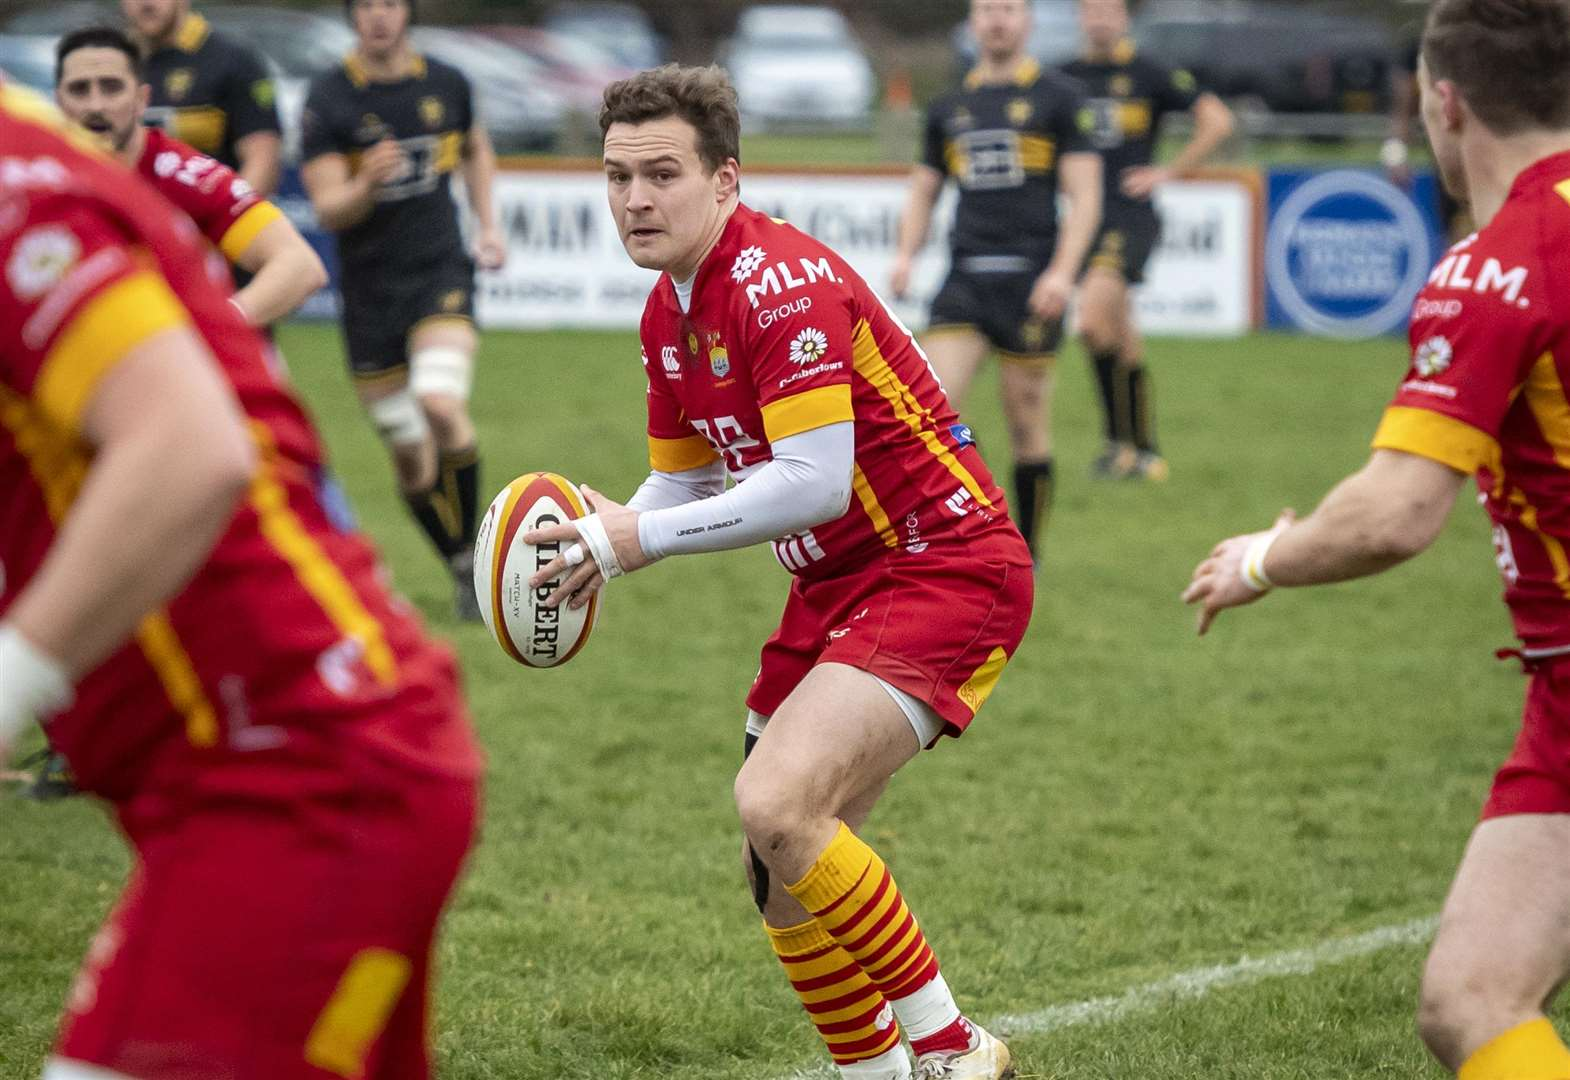 Alex Rayment try seals Cambridge victory over Cinderford